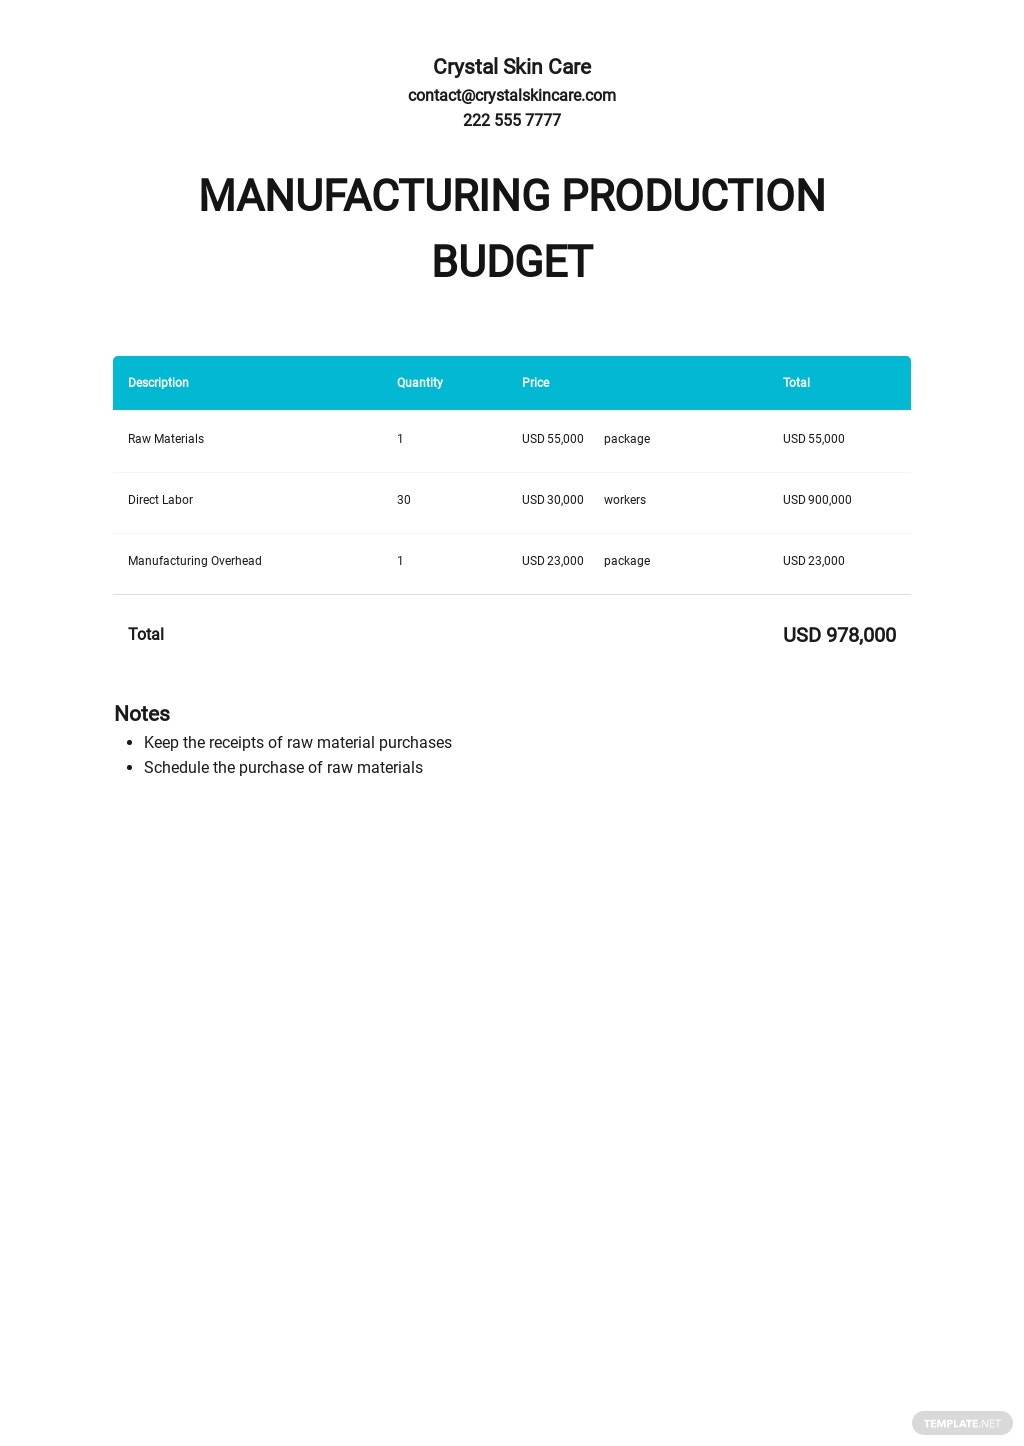 Manufacturing Production Budget Template.jpe